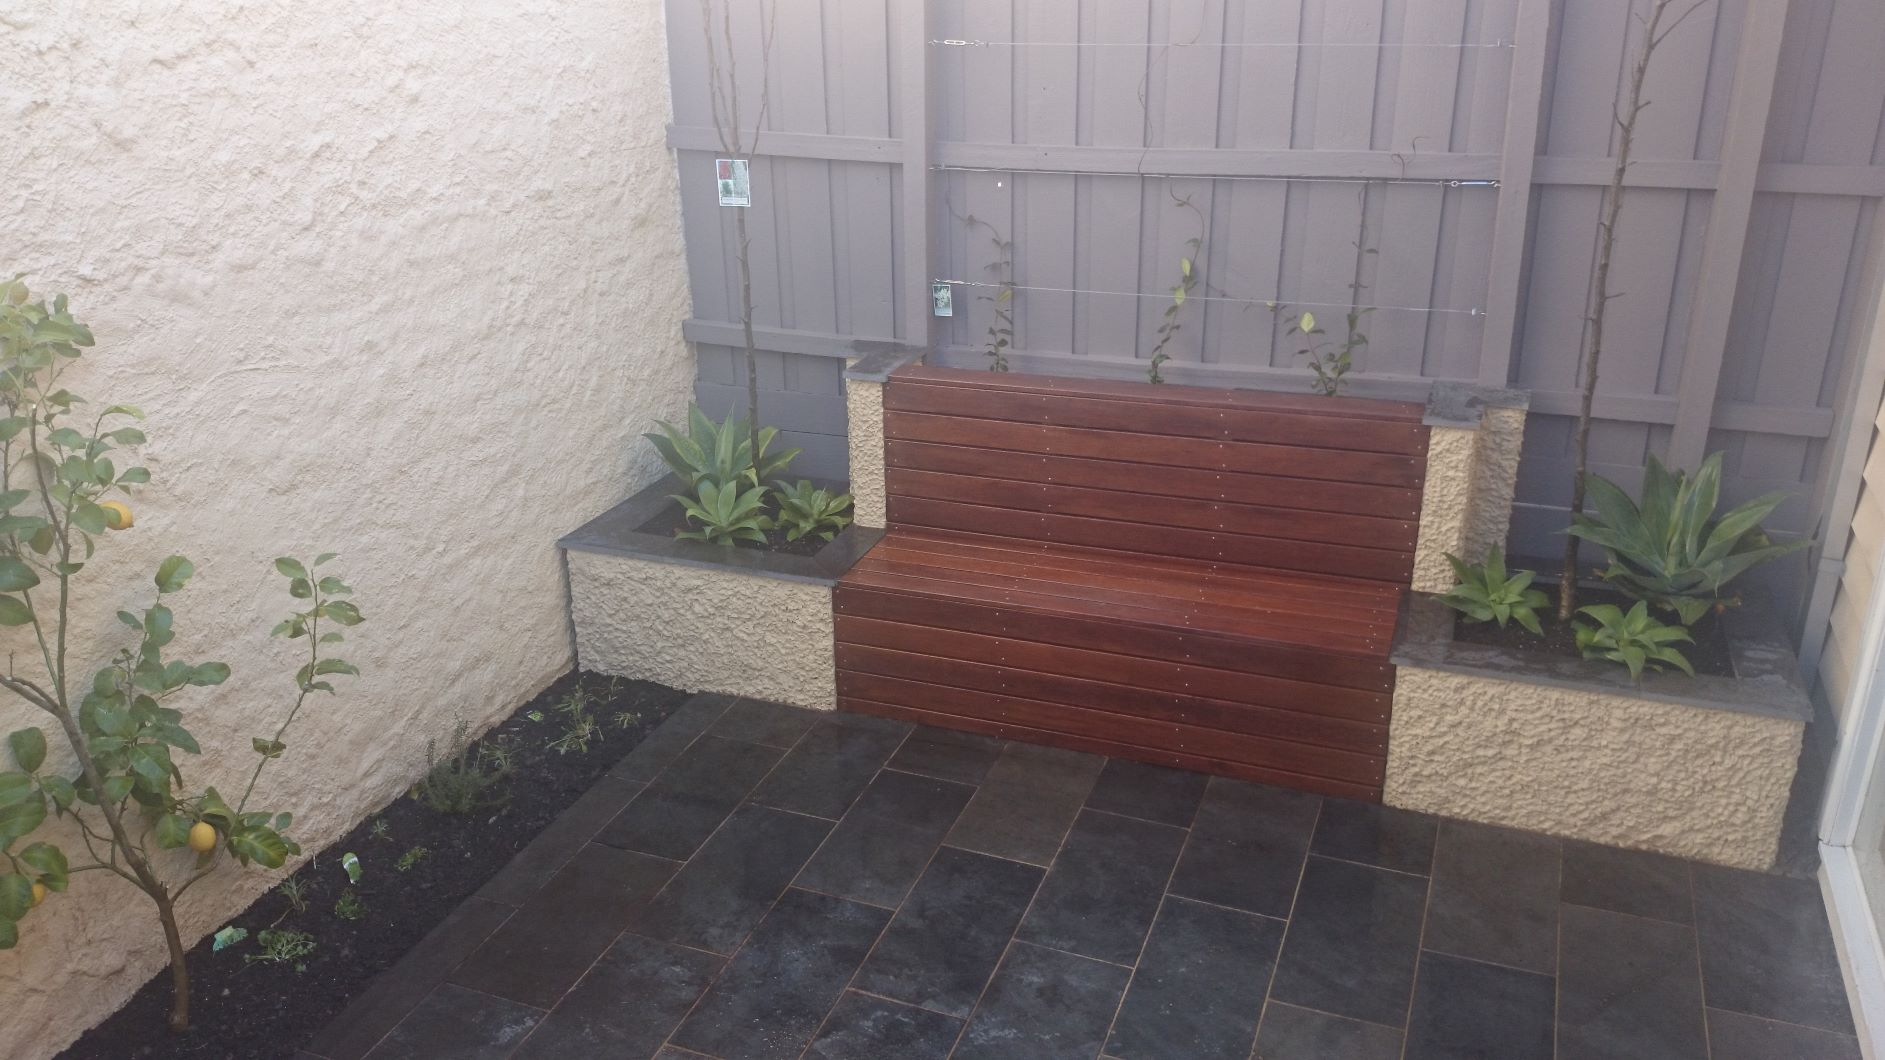 South Melbourne courtyard garden, Bluestone paving, rendered brick planter boxes, Timber built in seat.